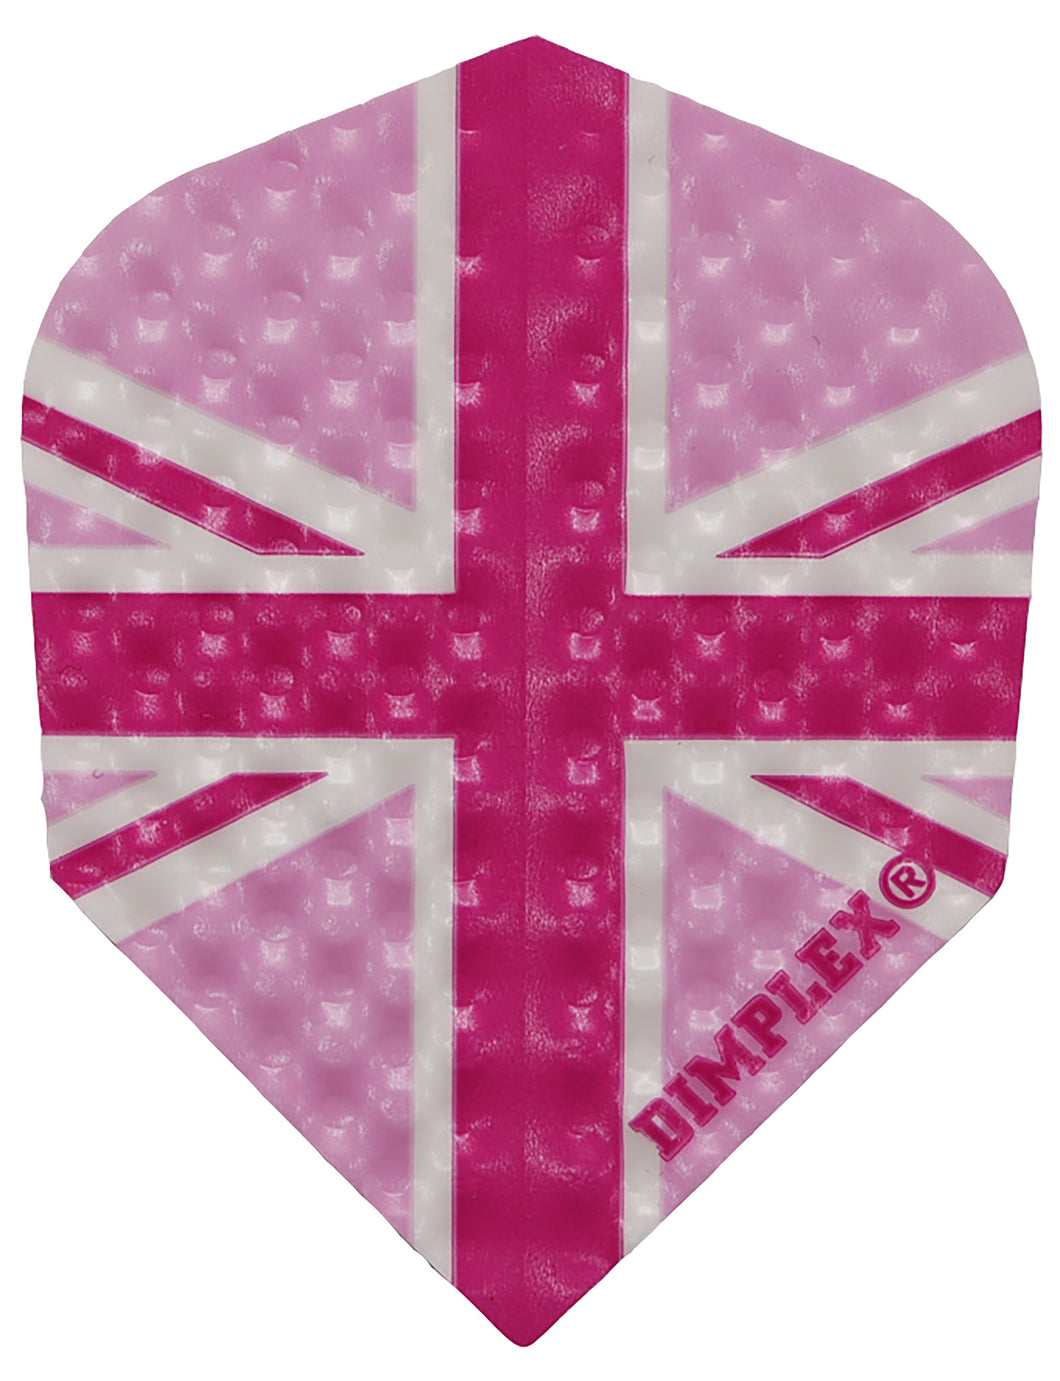 Harrow Dimplex Union Jack Pink